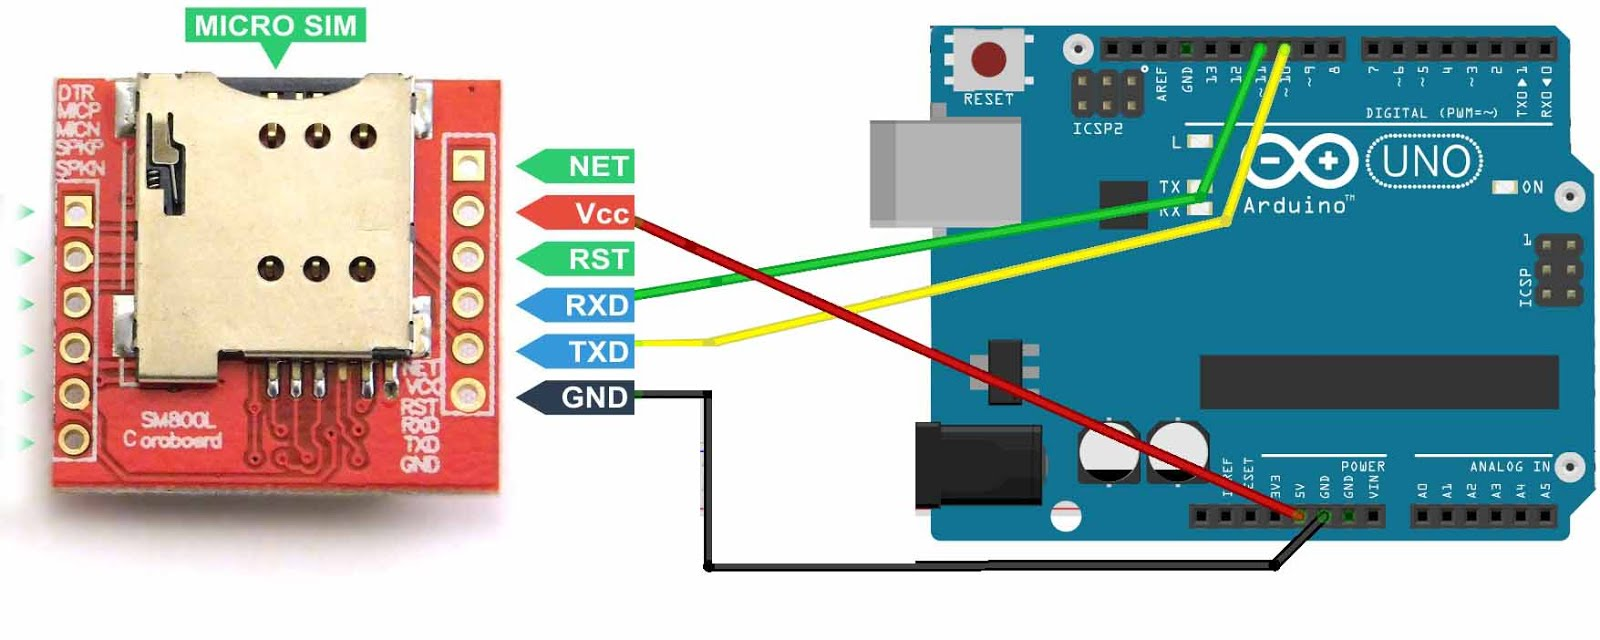 For more safety of the sim 800L module give the power to SIM800L module  through Arduino Uno board through a diode as follows